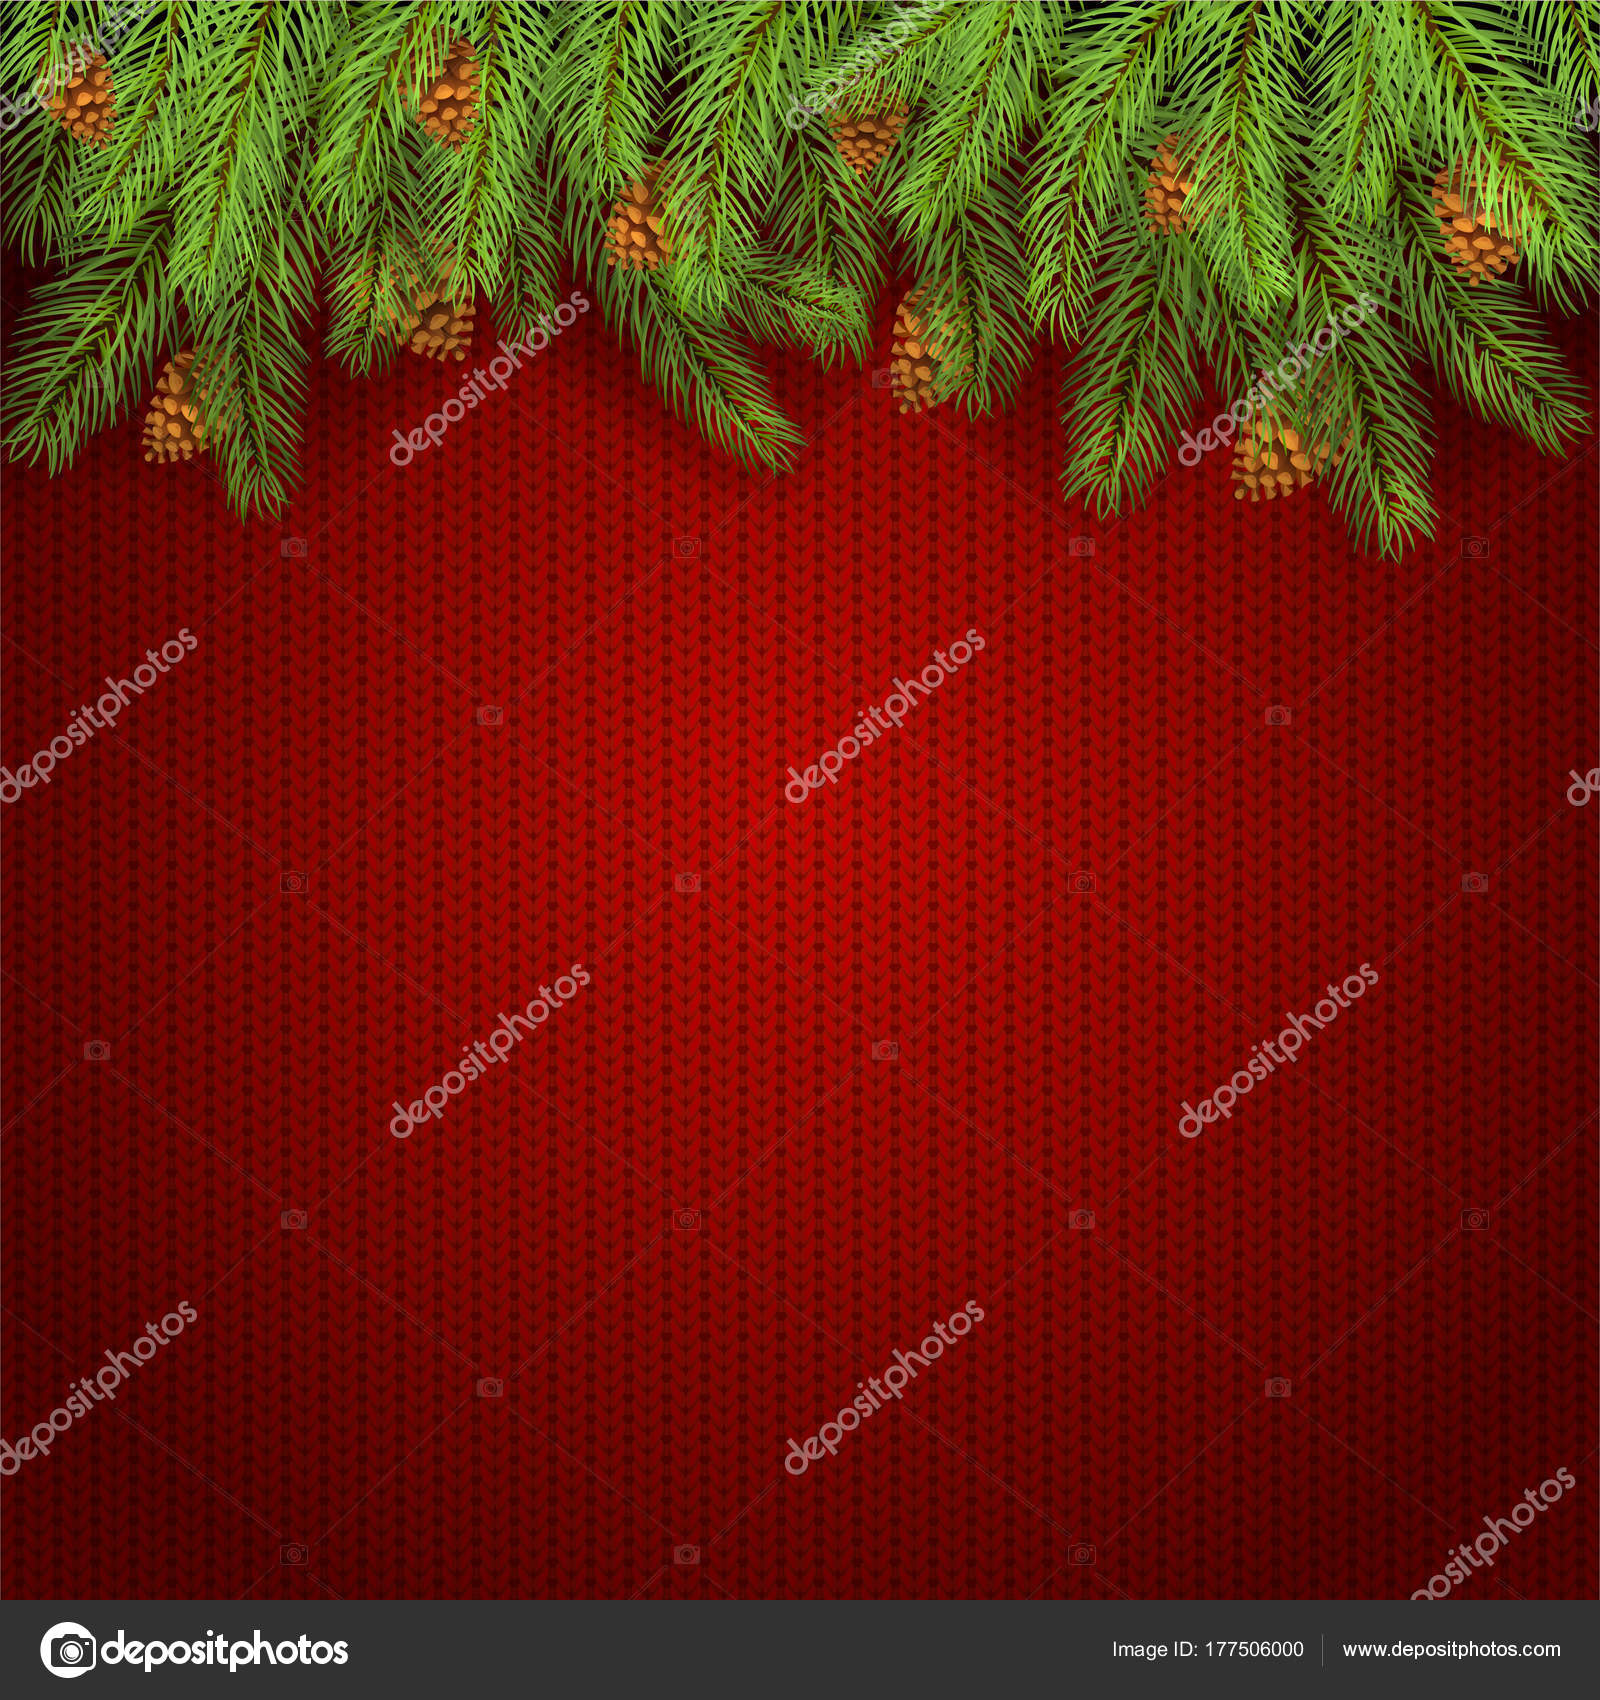 Christmas red knitted background and fir tree branches stock christmas background and spruce branches with pine cones holiday decorations on red knitted pattern illustration vector by losw bankloansurffo Images